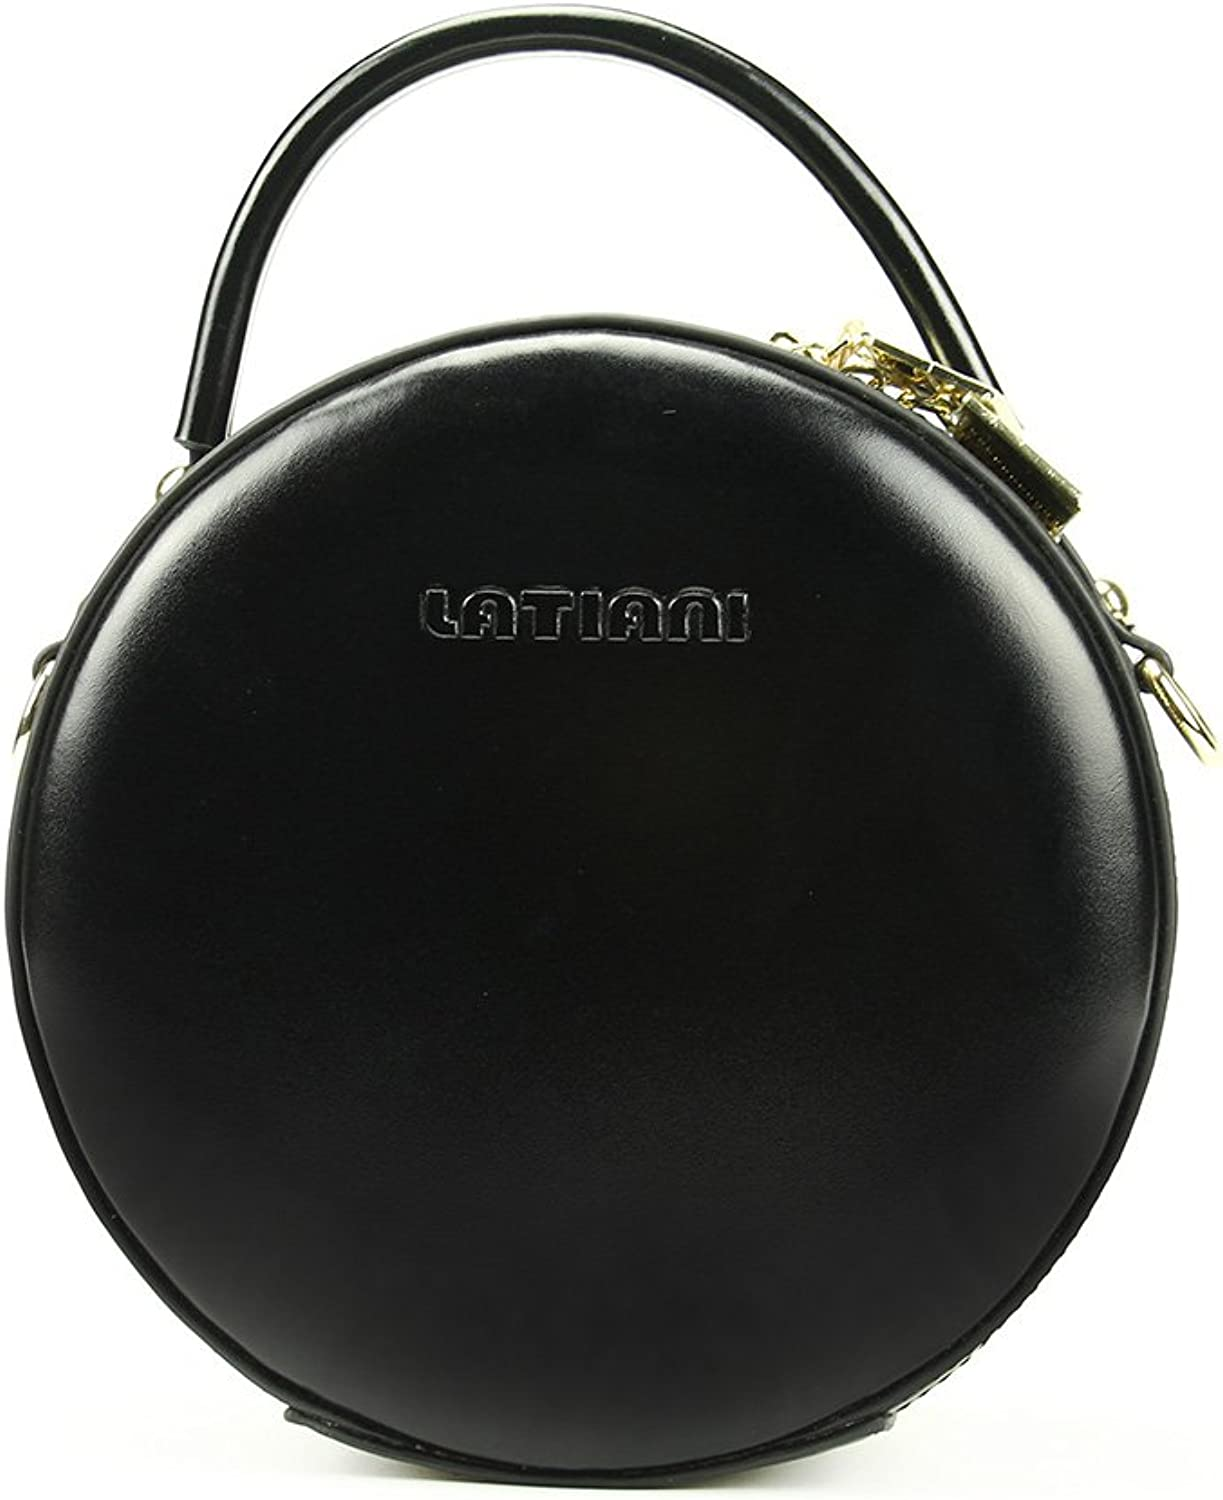 Huailv Women Circle Crossbody Bag Round Leather Shoulder Bag Handbags